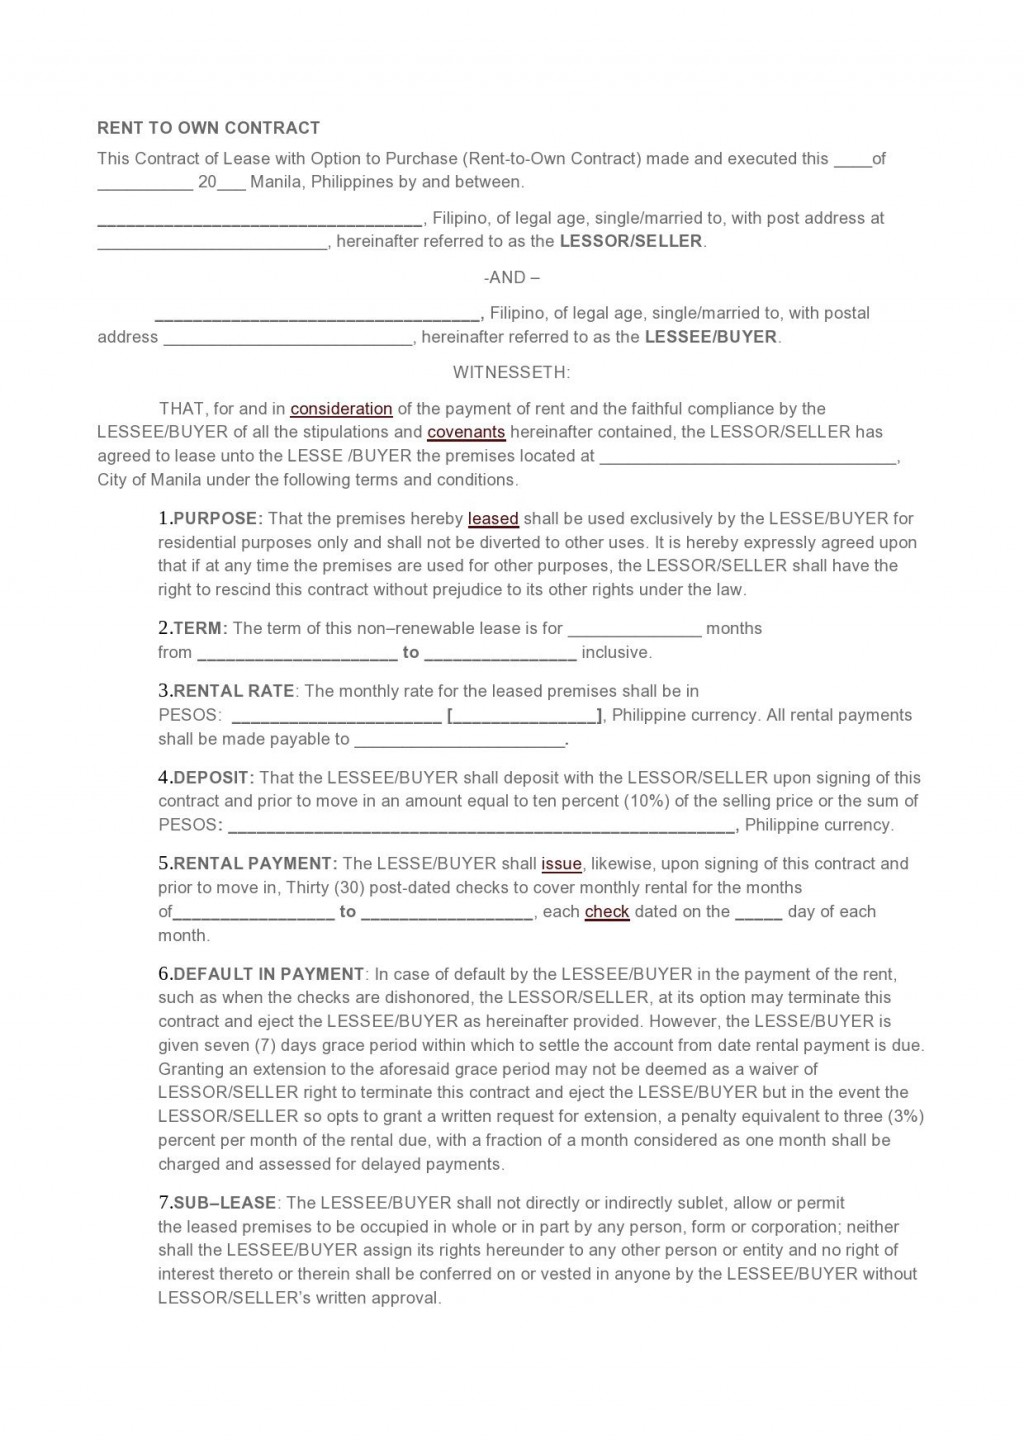 003 Awful Rent To Own Lease Template High Resolution  Example Agreement AlbertaLarge